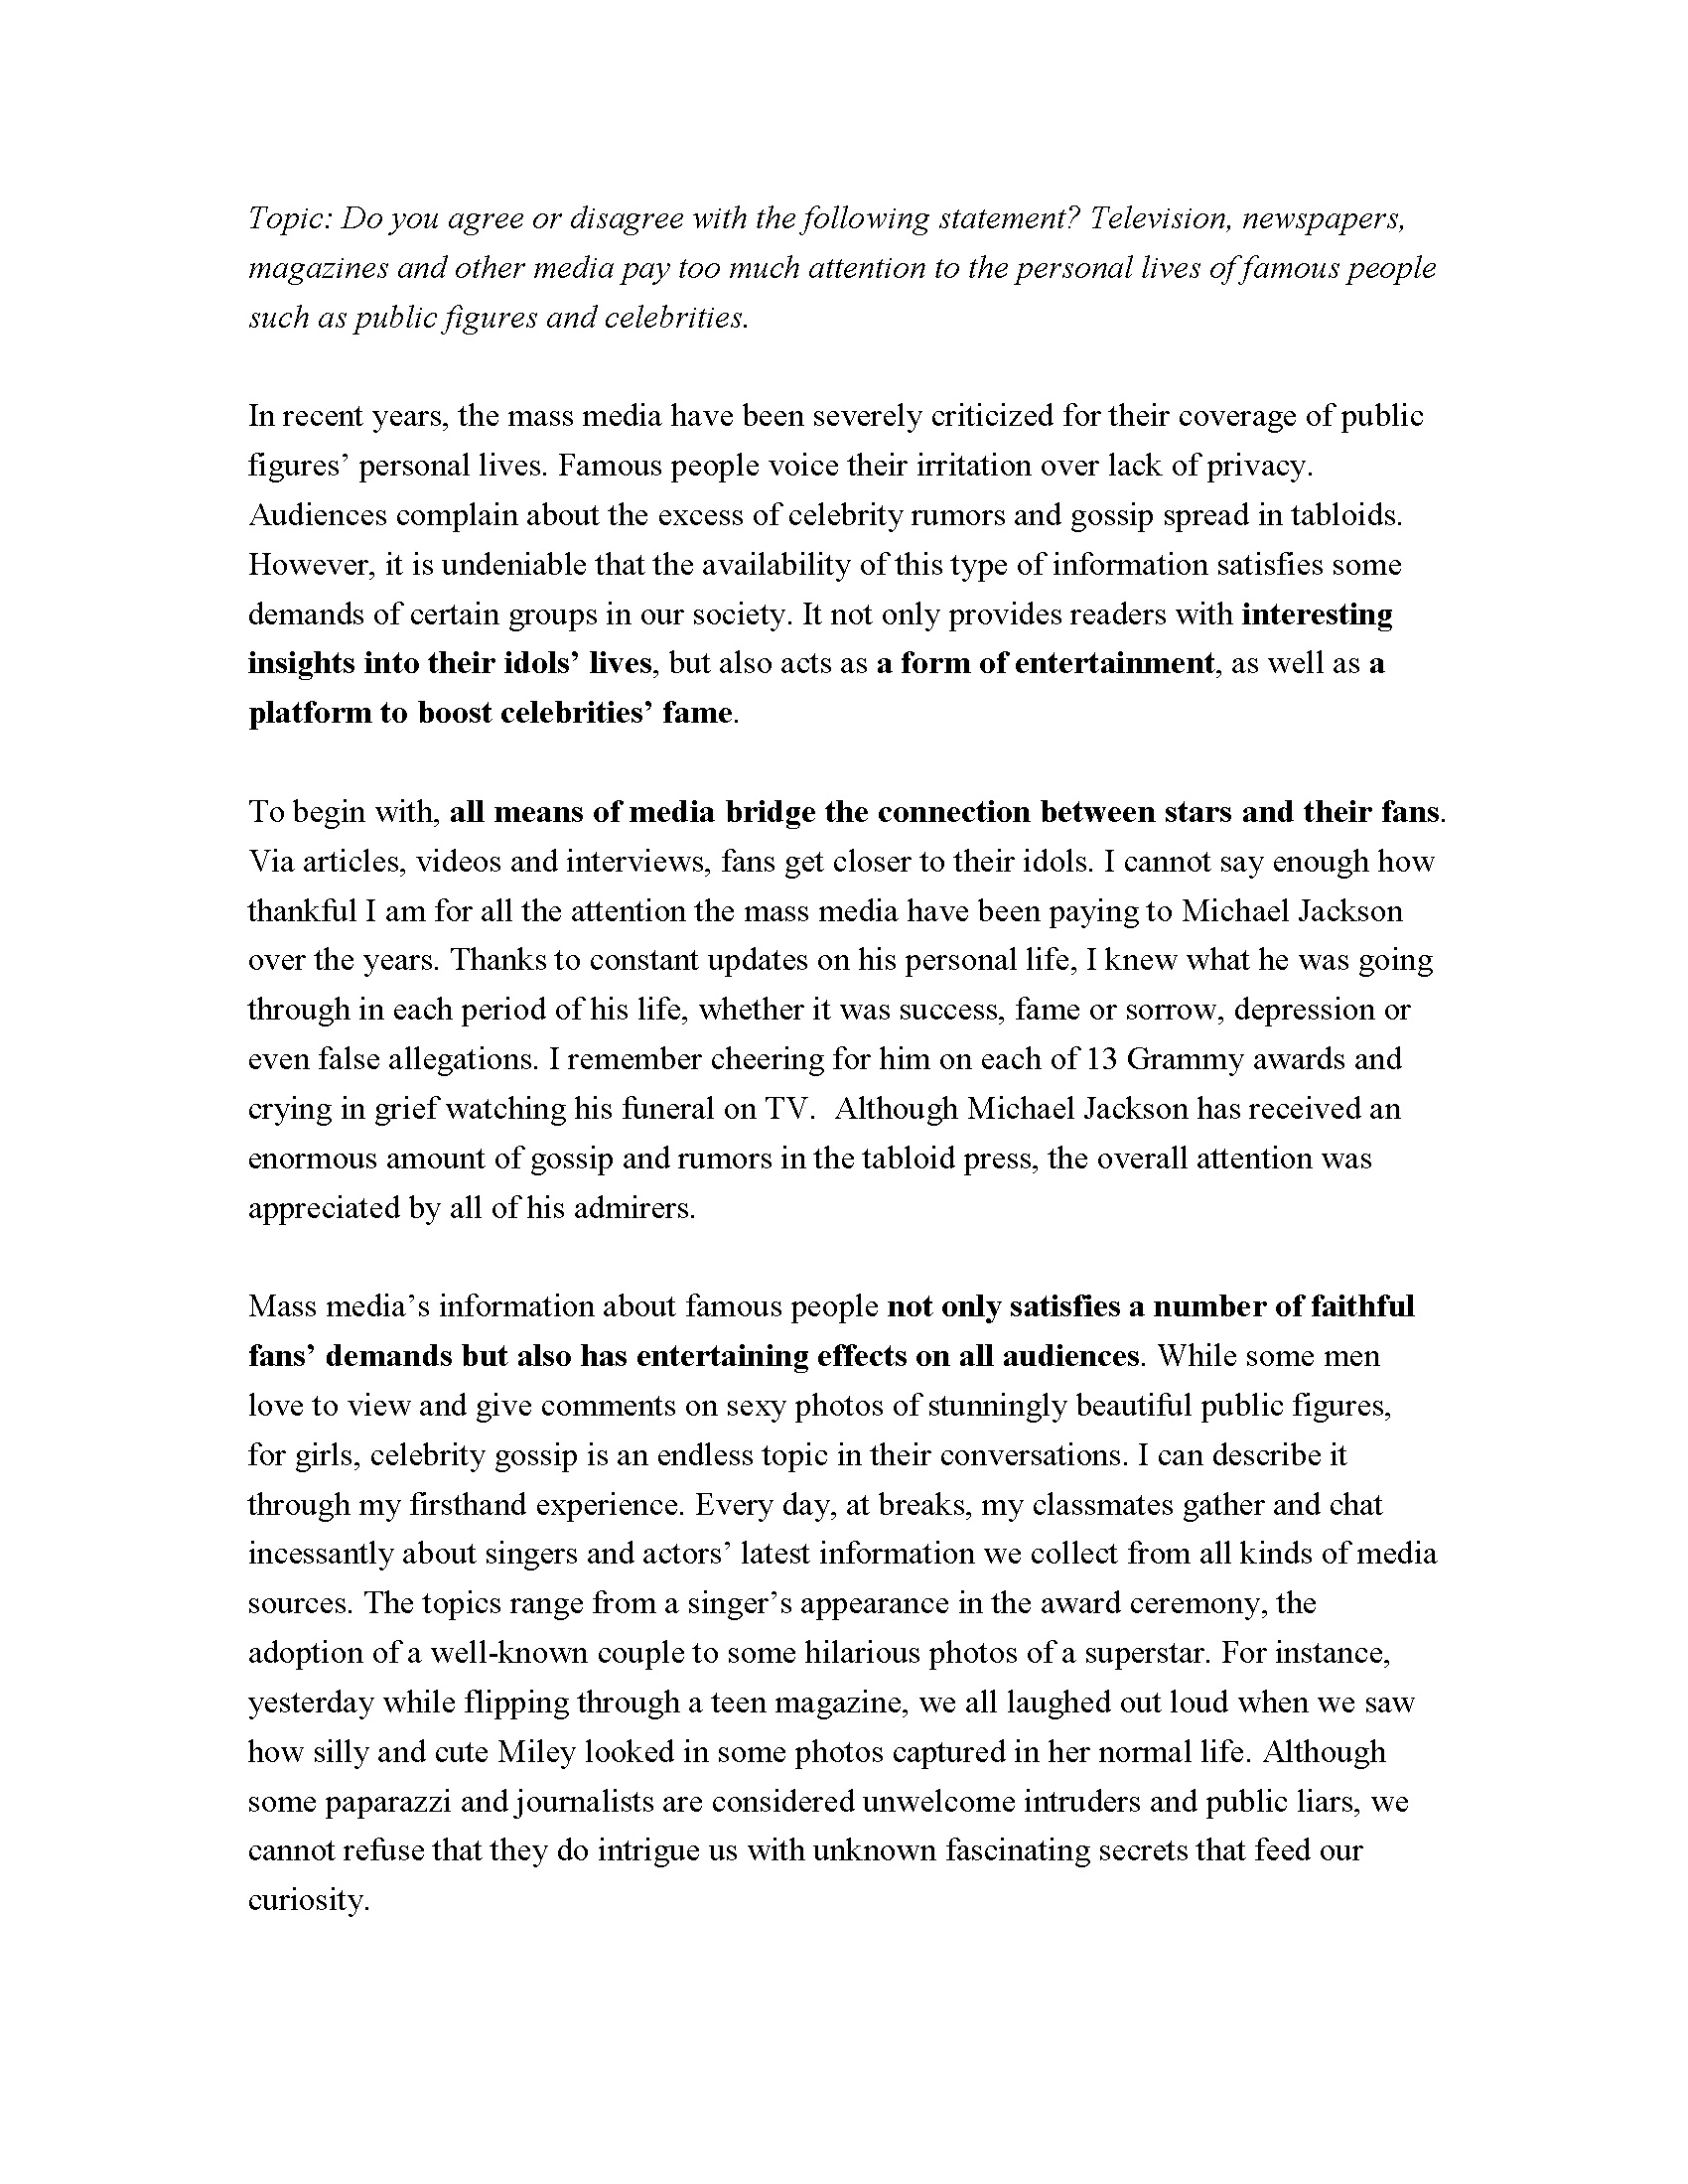 006 Essay Example Toefl Topics Essays On Privacy Agree Disagree Writing Pdf The Mass Medias Attent Ibt With Answers Examples Dreaded 2017 185 Ets Full